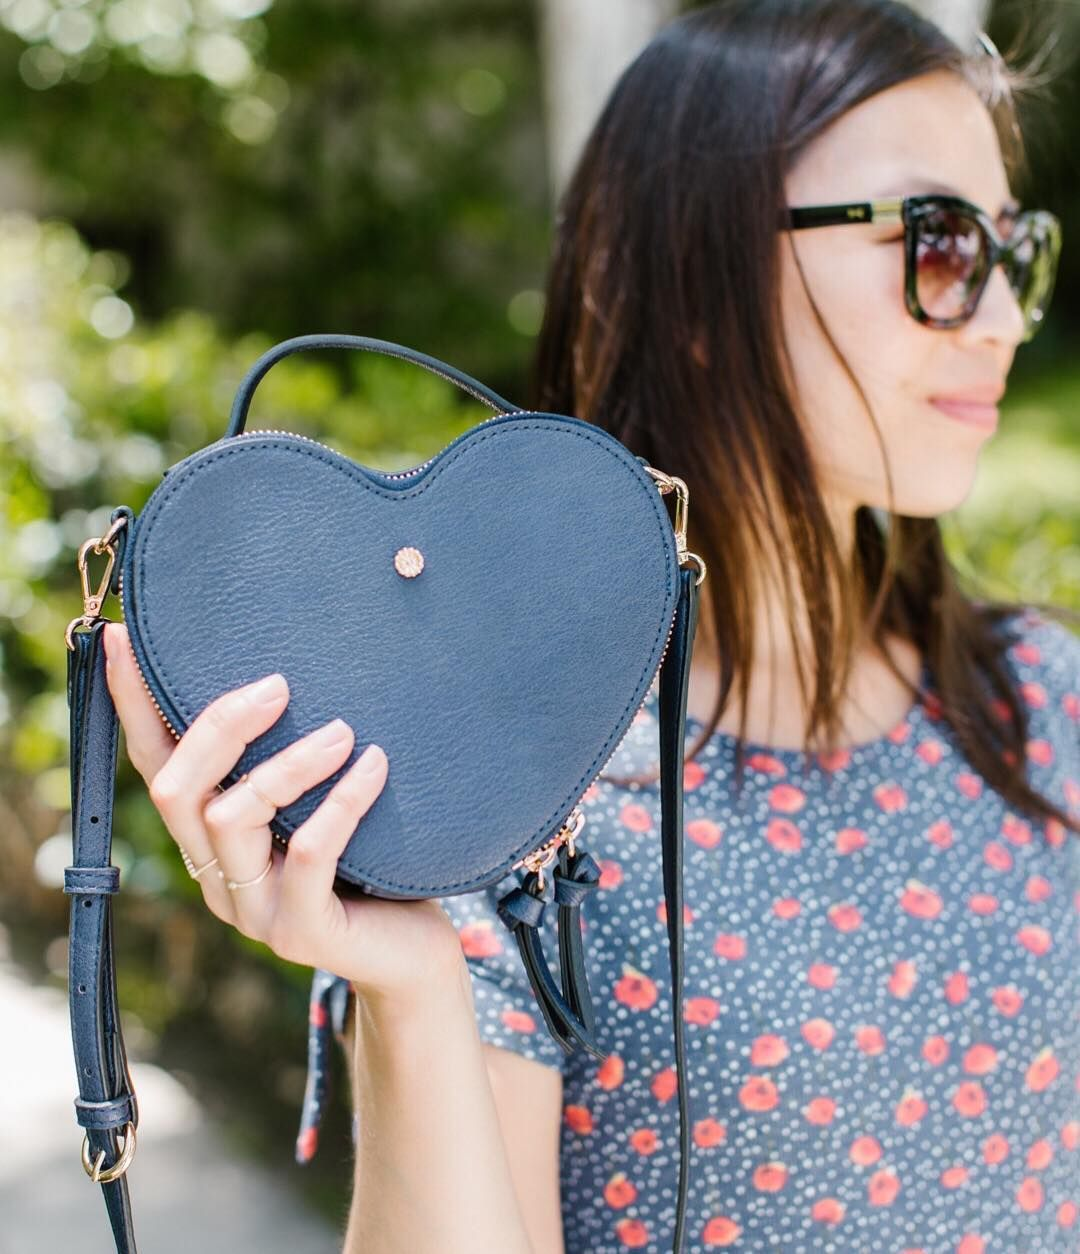 7abba2421 Wear your heart on your handbag ❤ Tap to shop this #LCLaurenConrad Heart-